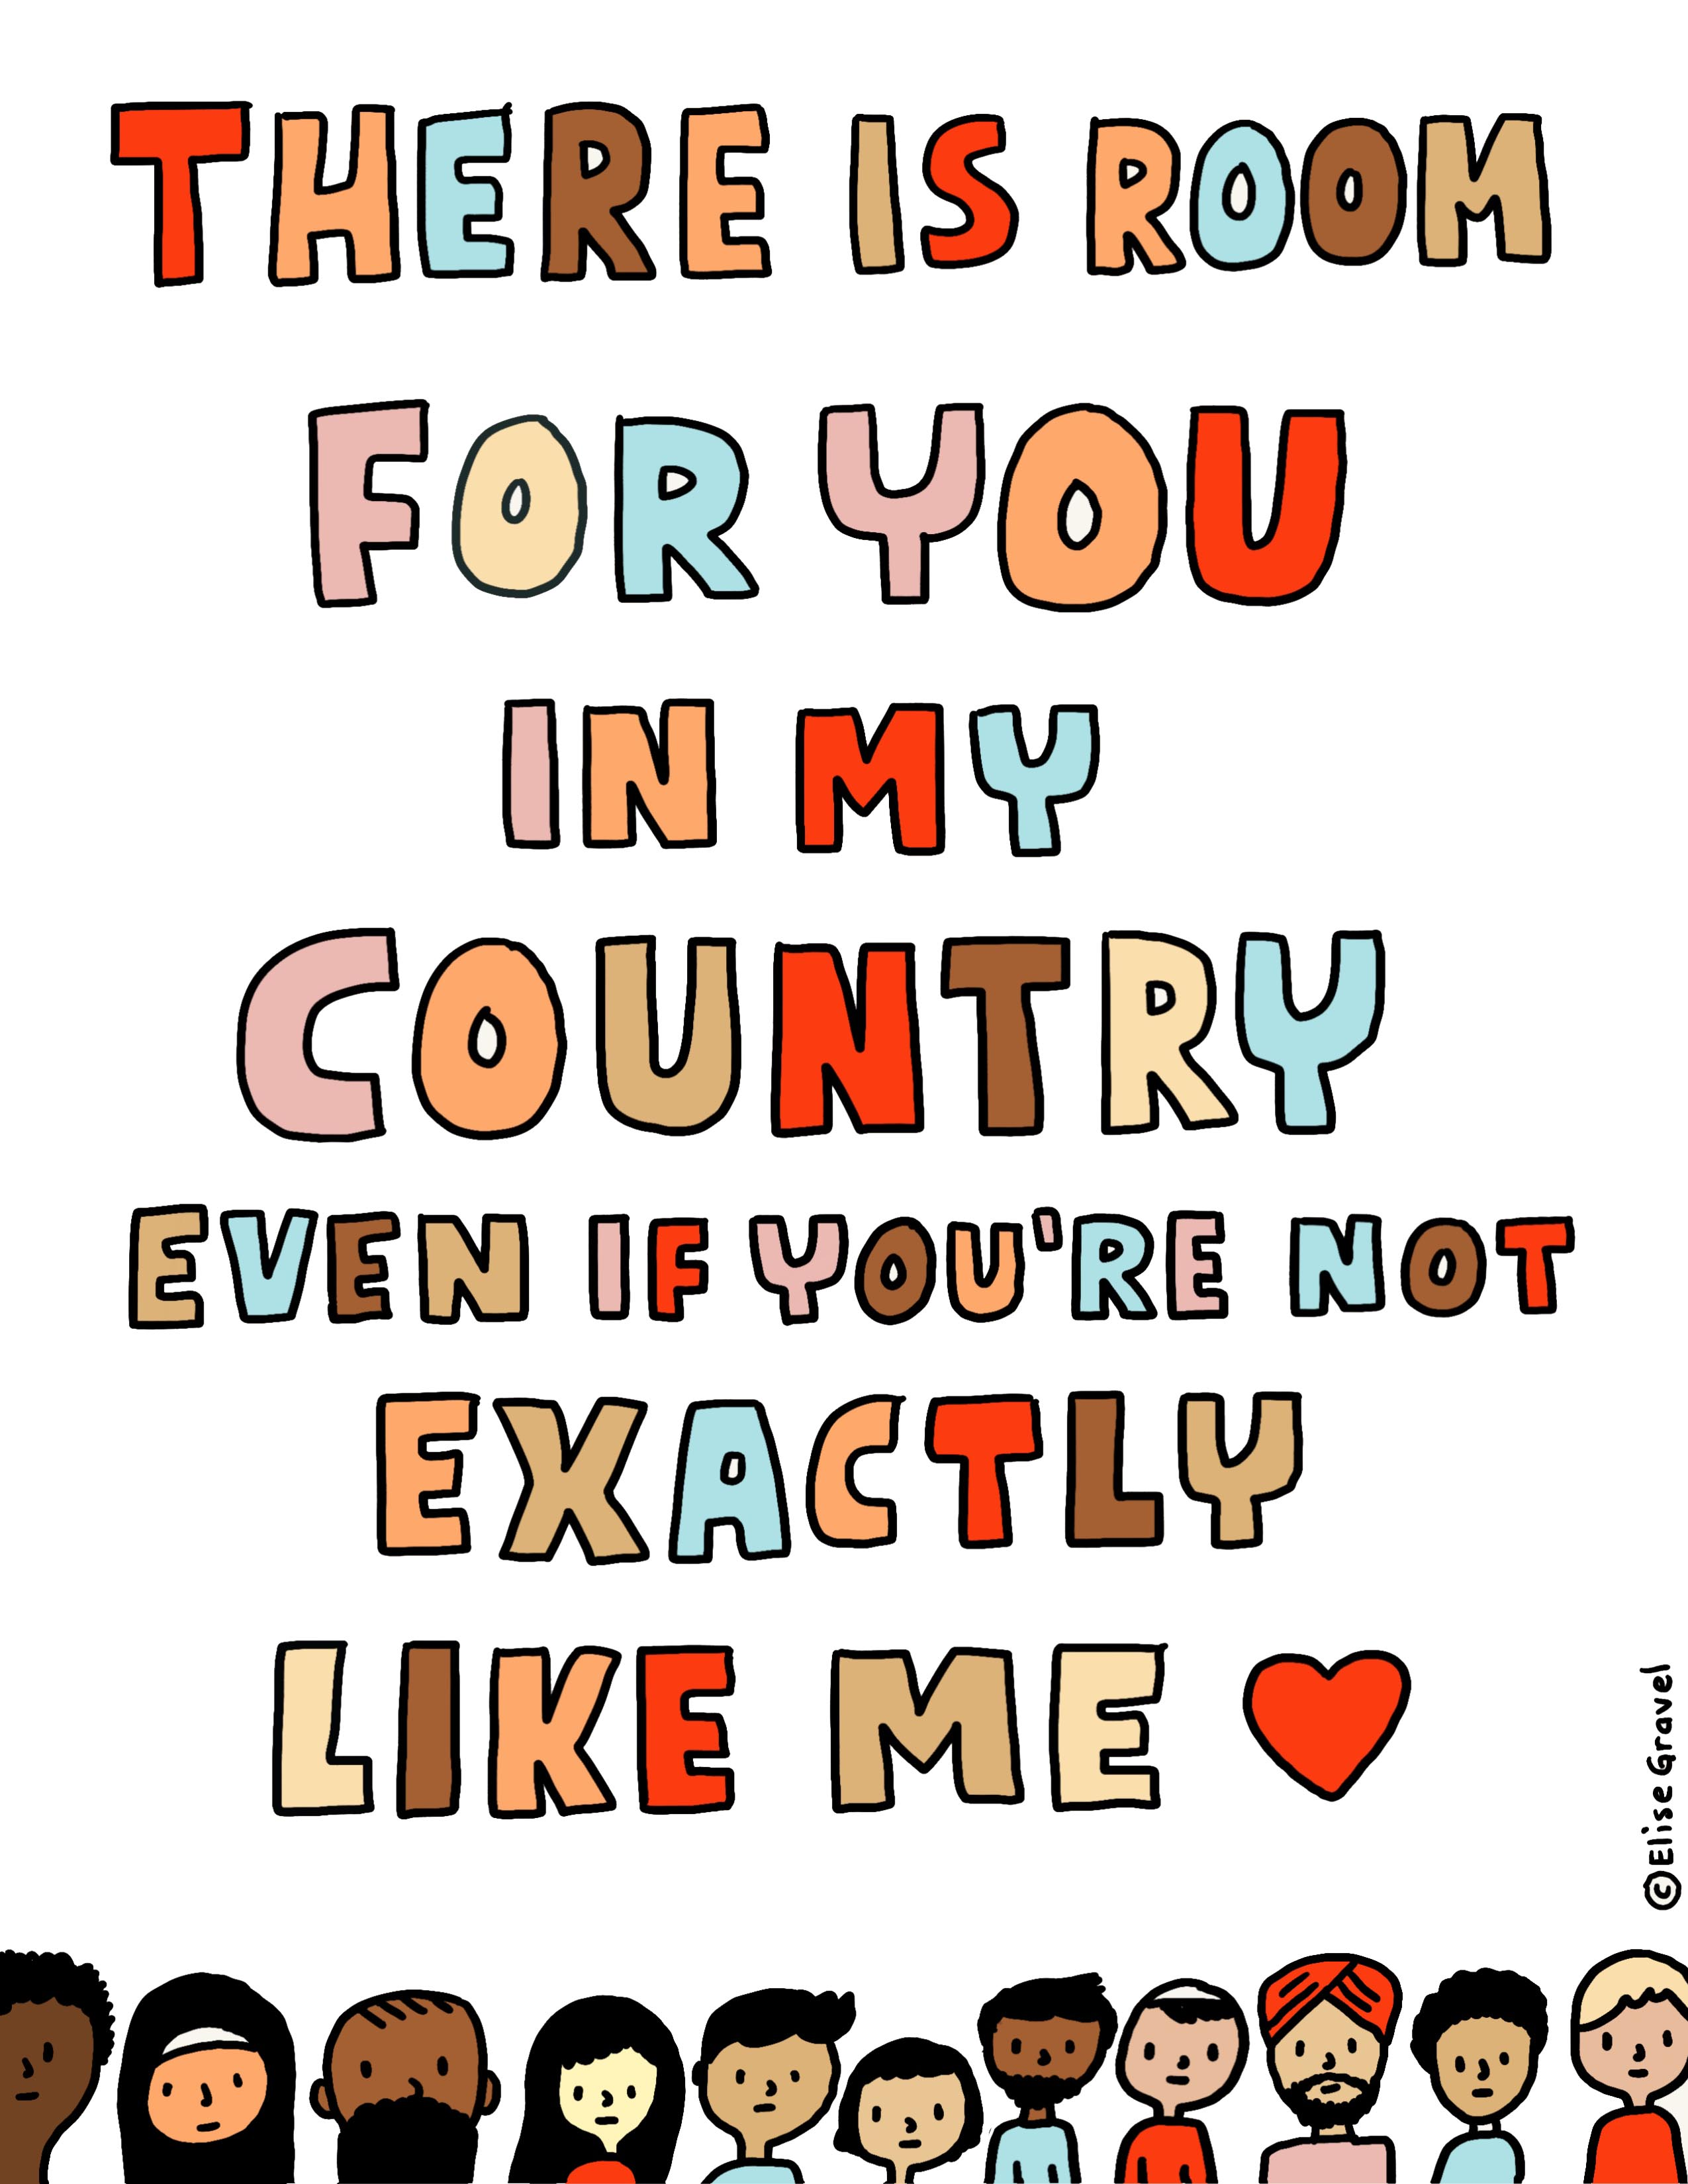 There is room for you in my country